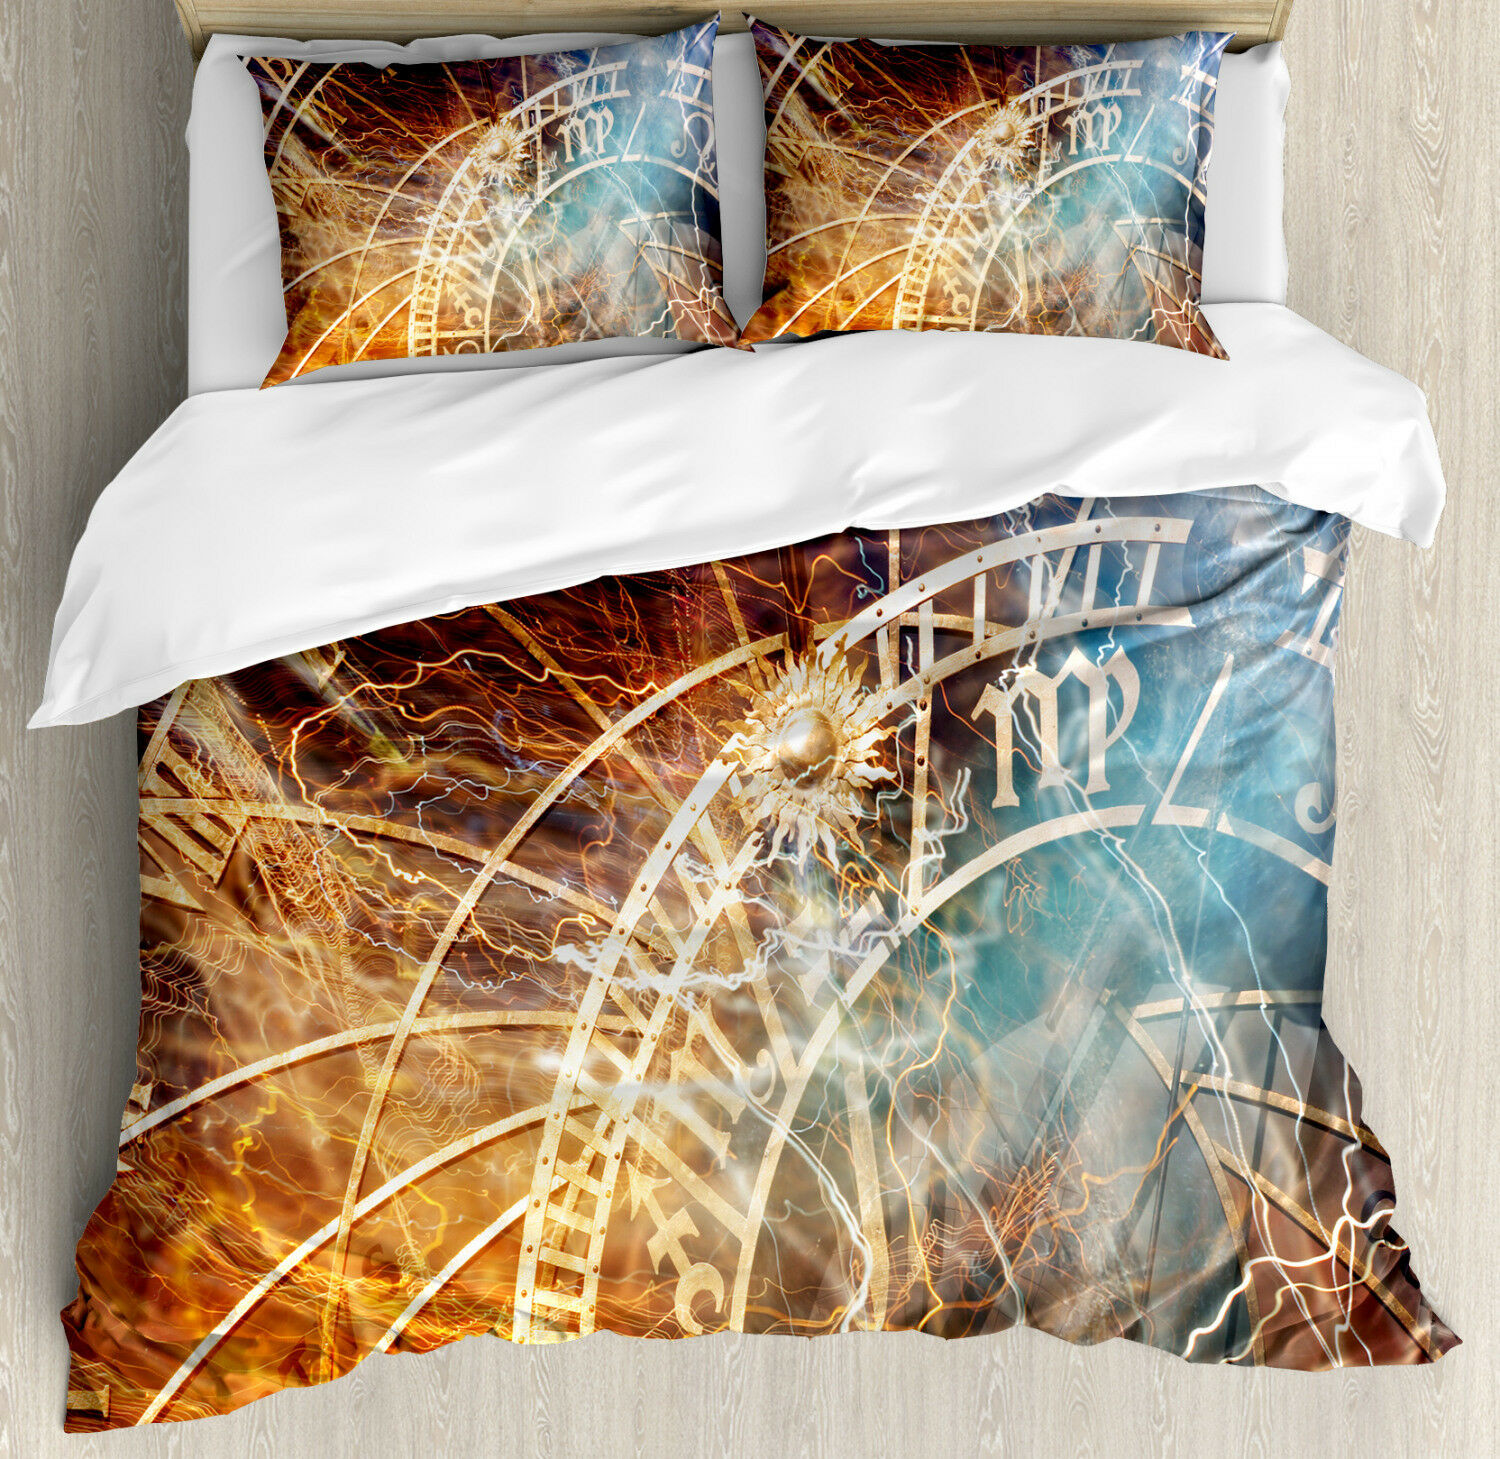 Astrology Duvet Cover Set with Pillow Shams Old Prague Hgoldscope Print